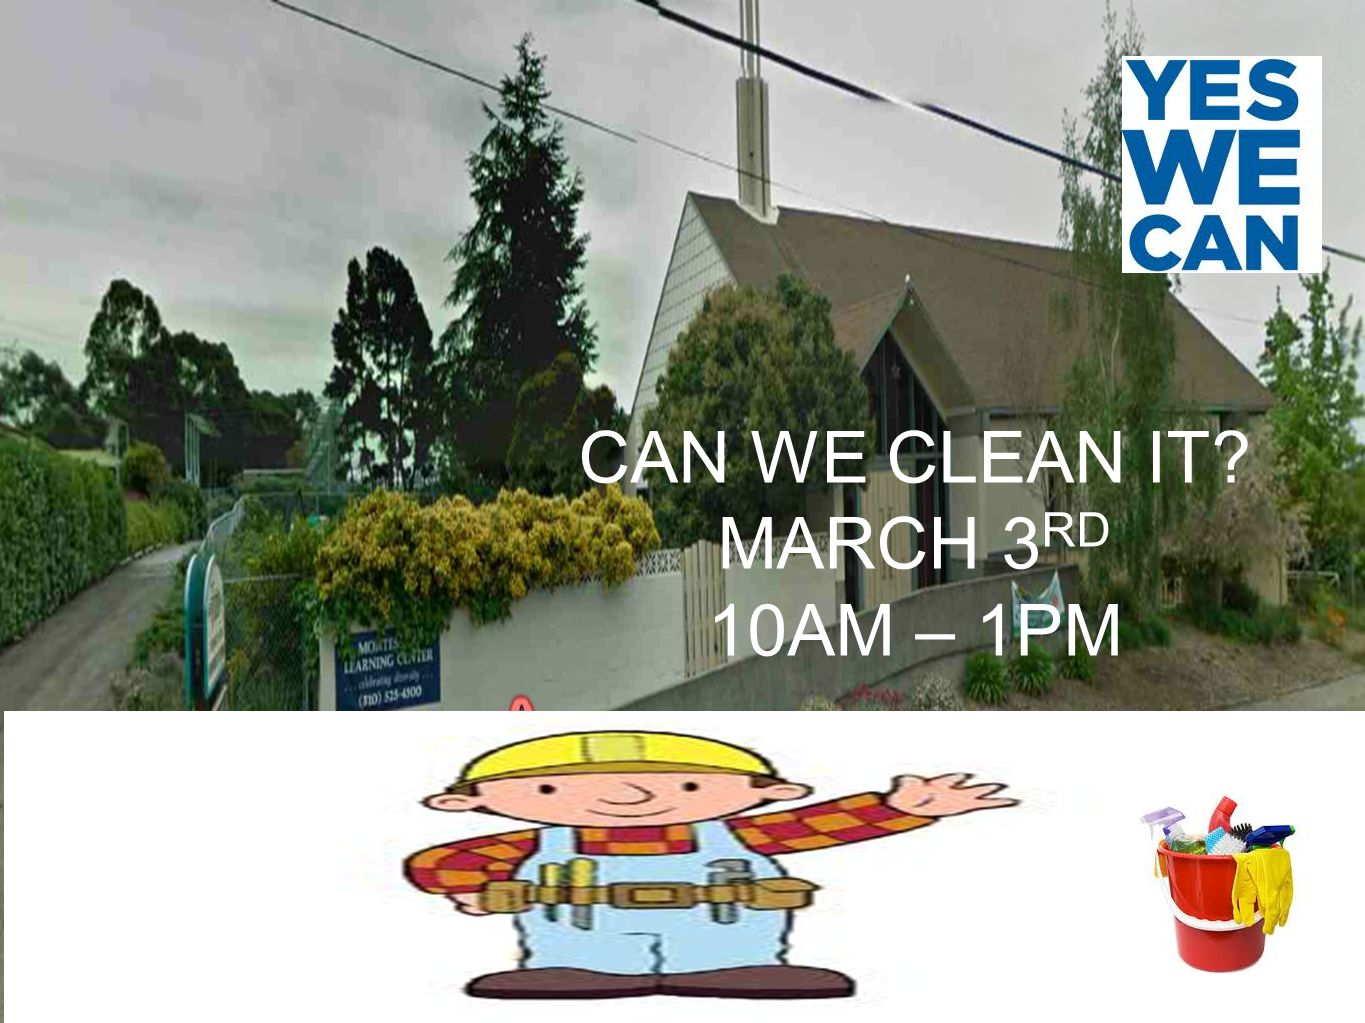 CAN WE CLEAN IT? MARCH 3 RD 10AM – 1PM